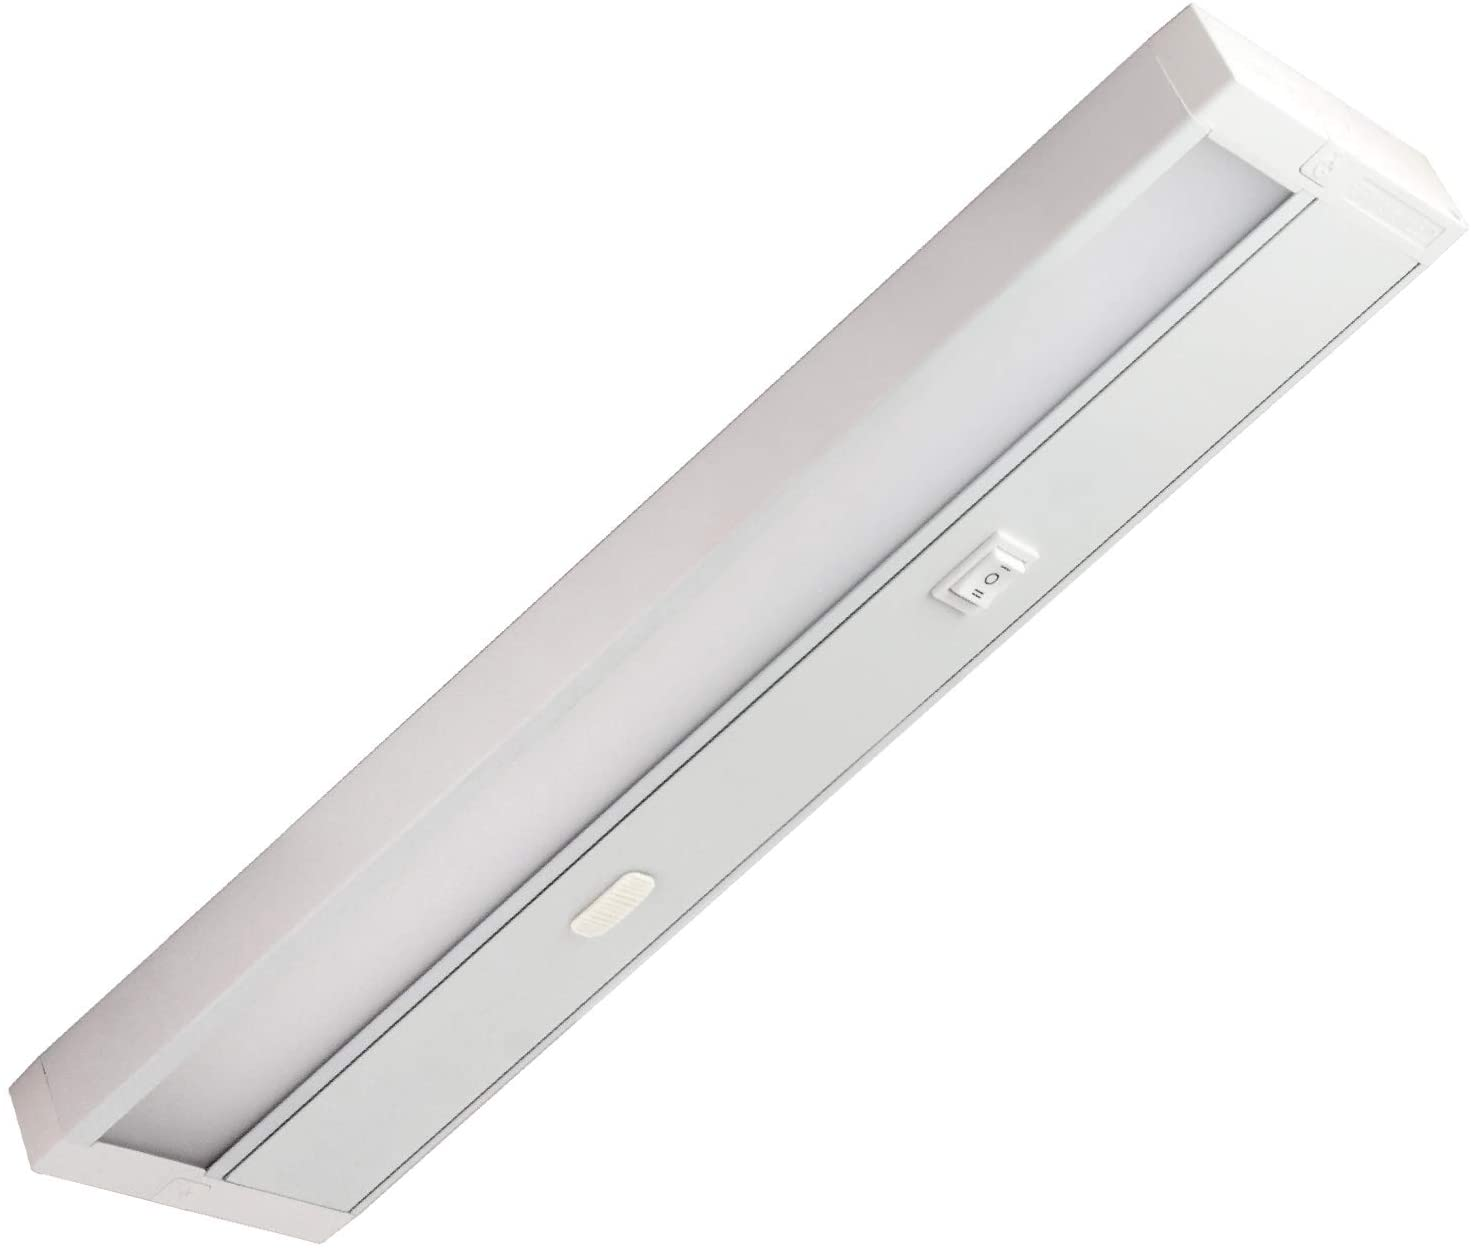 11 LED Under Cabinet Light Fixture; Edge Lit; TRI Color 3000K, 4000K, 5000K All in One Fixture! Dimmable; 6W; 350 Lumens; 120V; CRI>90; UL and Energy Star Certified; White Finish